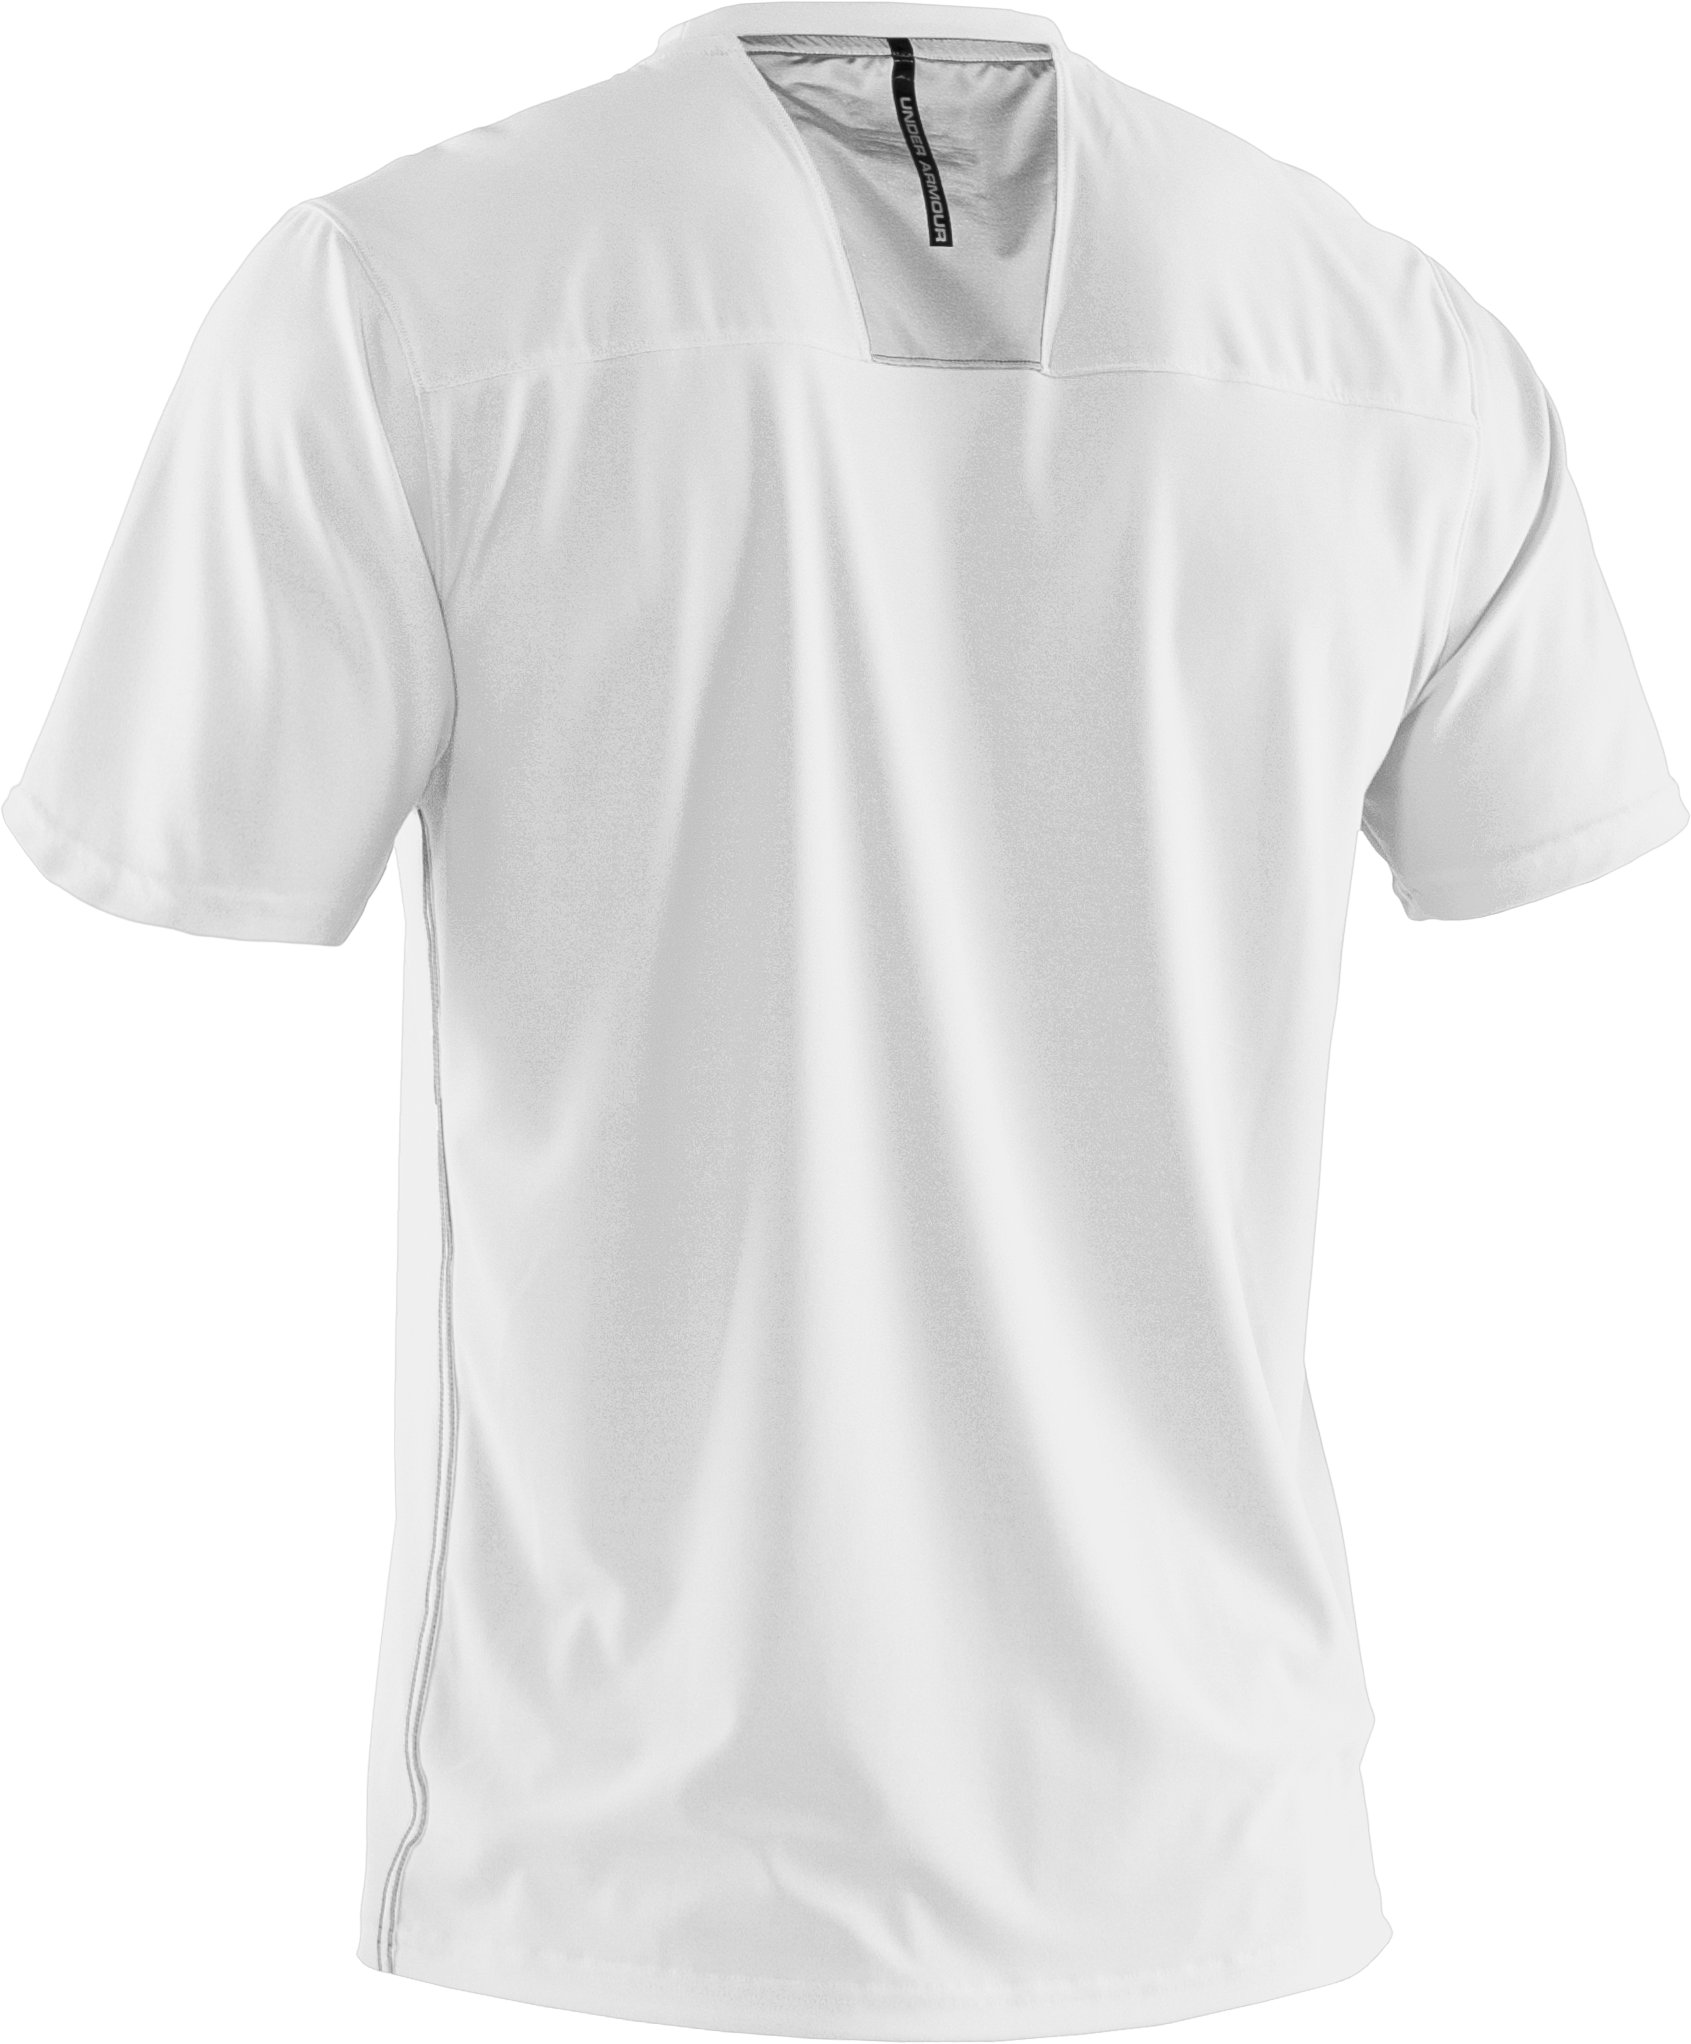 Men's coldblack® Short Sleeve T-Shirt, White